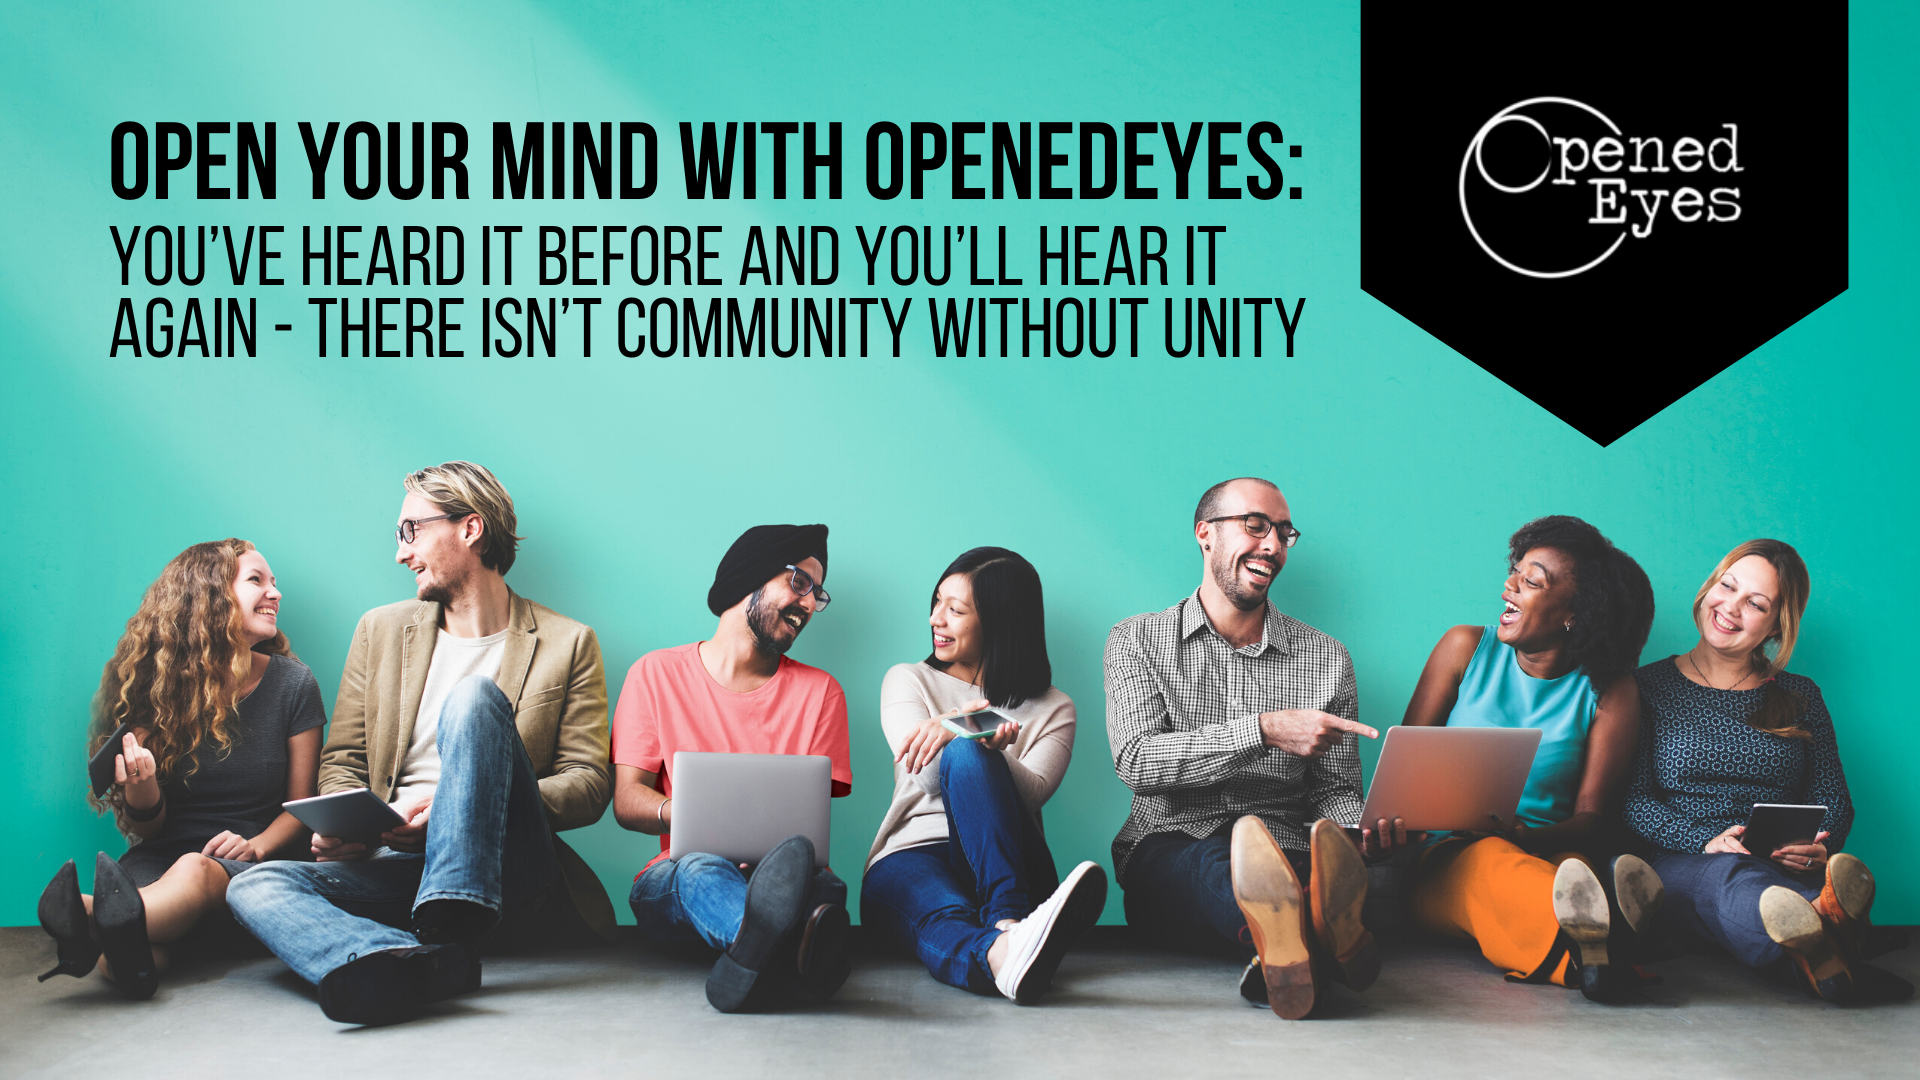 [Zoom Meeting] Open Your Mind with OpenedEyes: You've Heard it Before and You'll Hear it Again - There Isn't Community without Unity